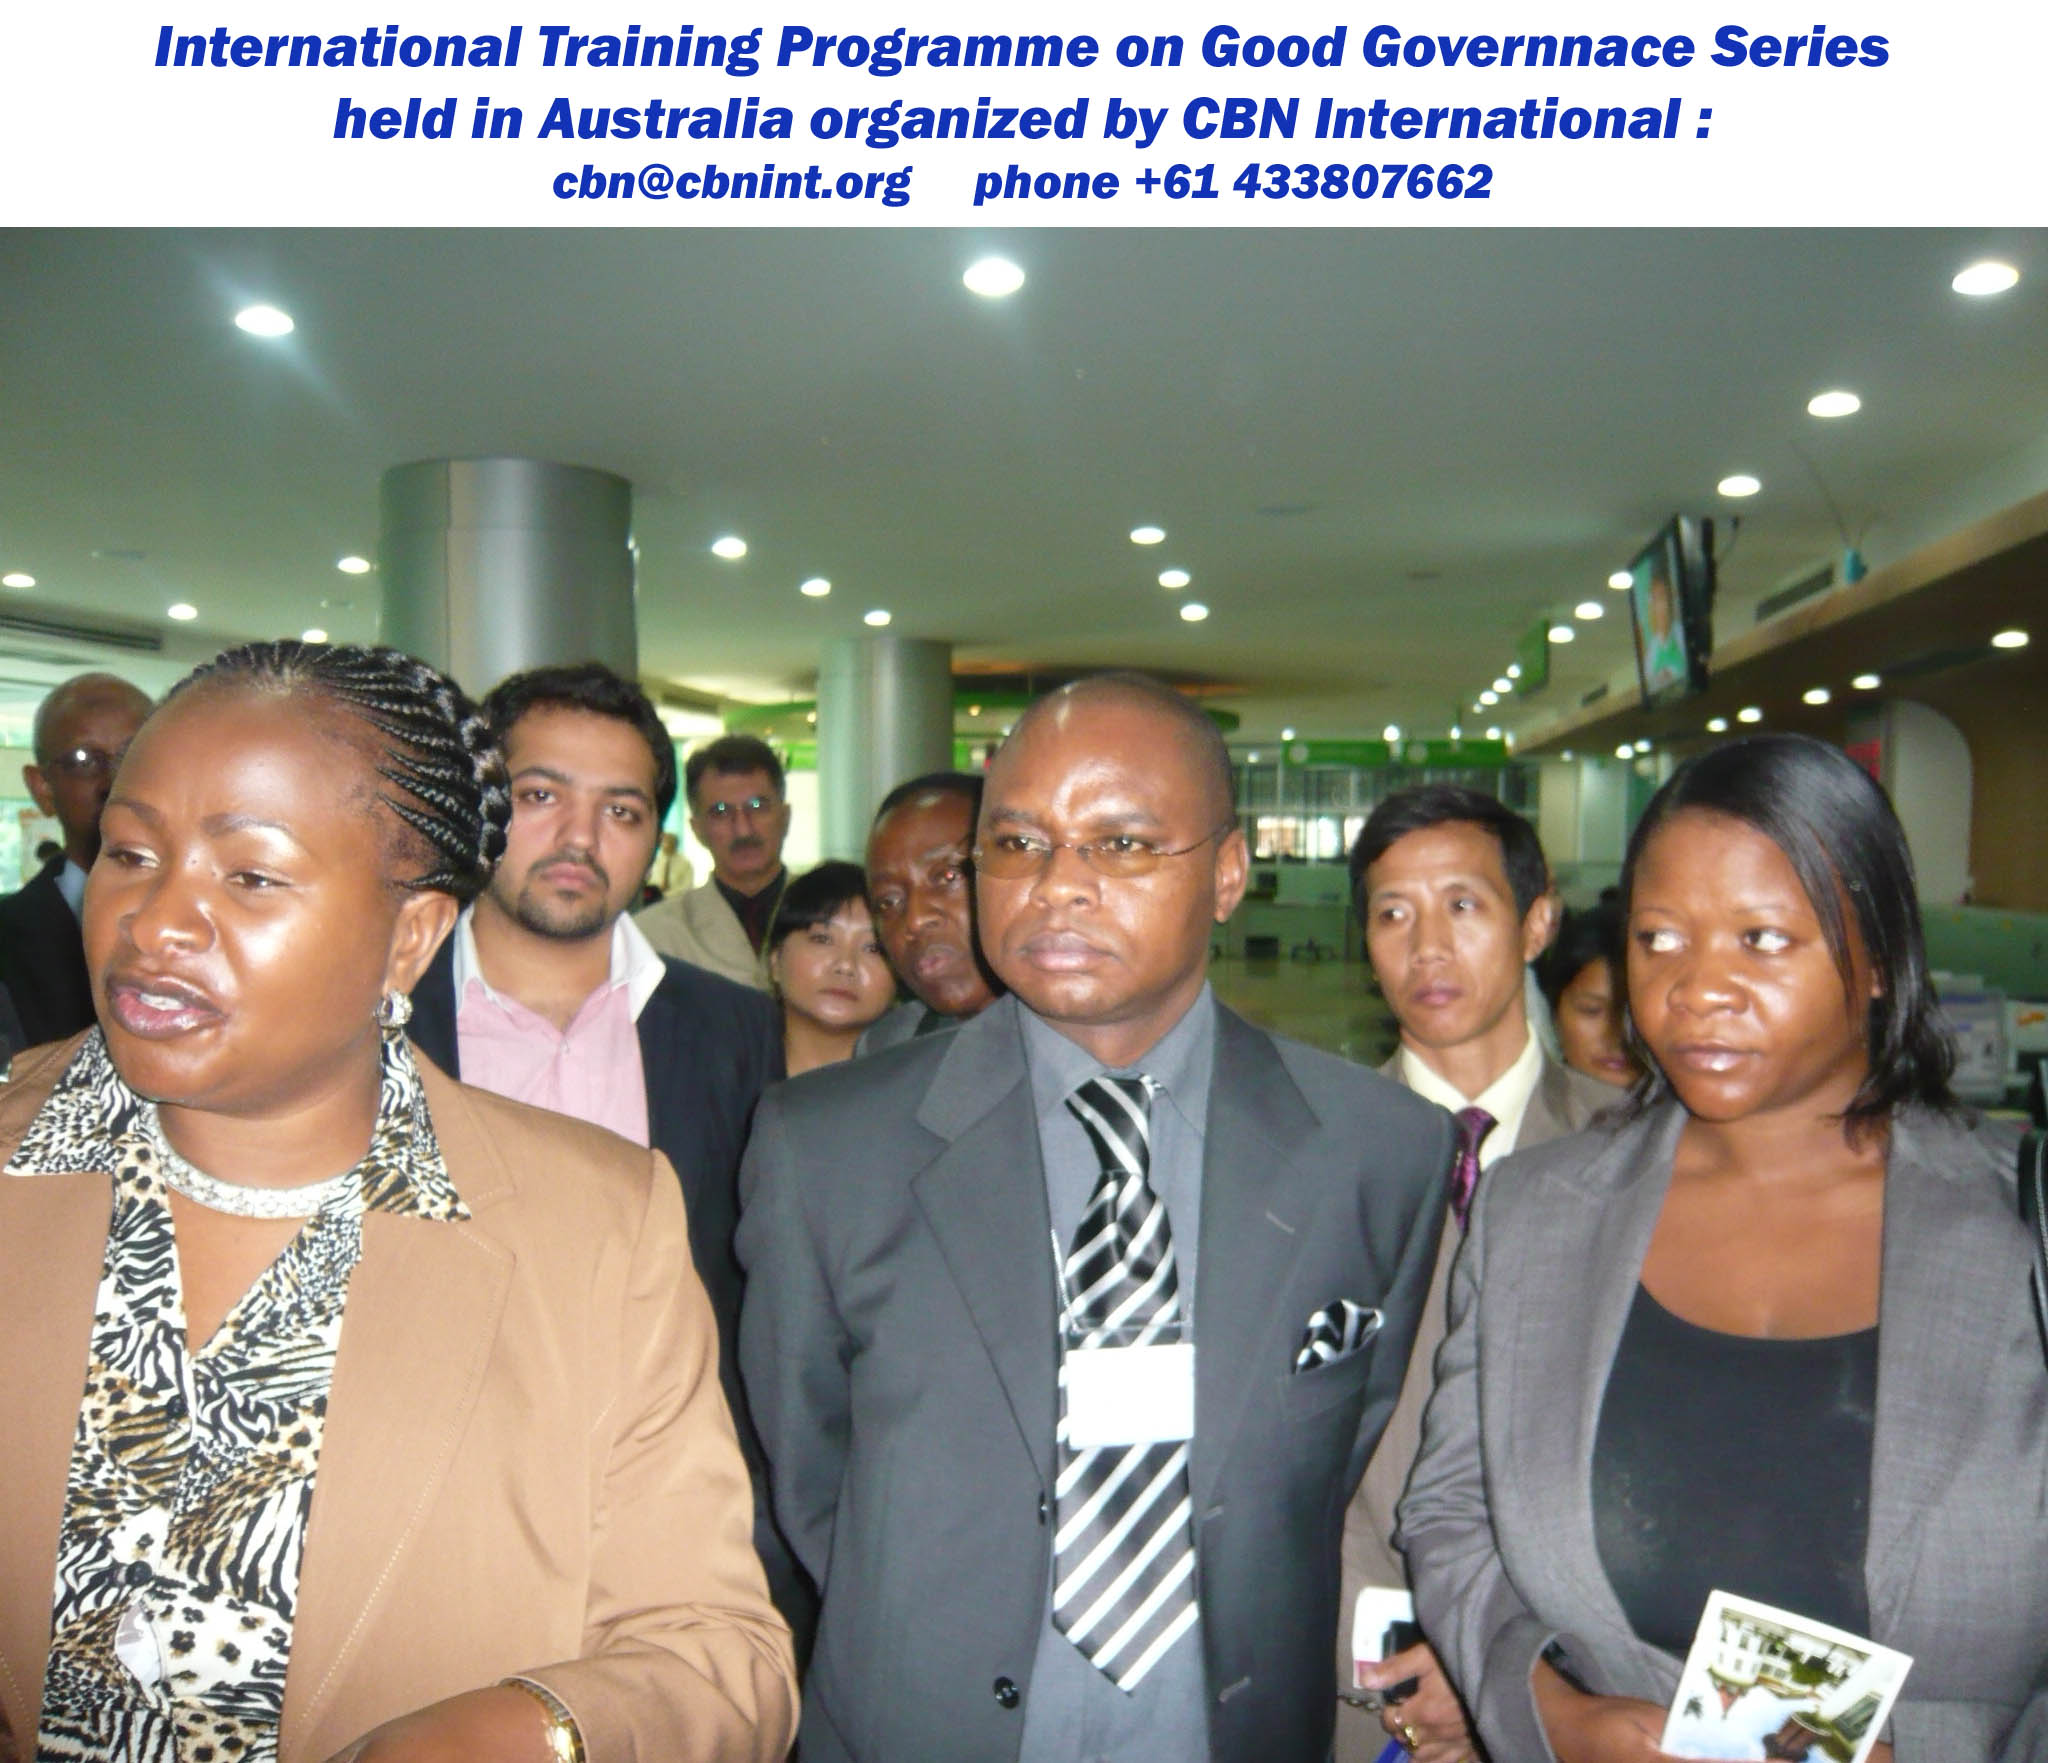 Ms Wavinya Ndeti, Hon. Assistant Minister Ministry of Youth Affairs & Sports, Mr. Amason Jeffah Kingi, Hon'ble Minister, Ministry of East African Community, Kenya and Ms Emma Mabvumbe, Assistant Budget Director, Ministry of Finance, Malawi with other participants during a field visit of CBN international training and study tour workshop held in Australia; short course on Good Governance series.